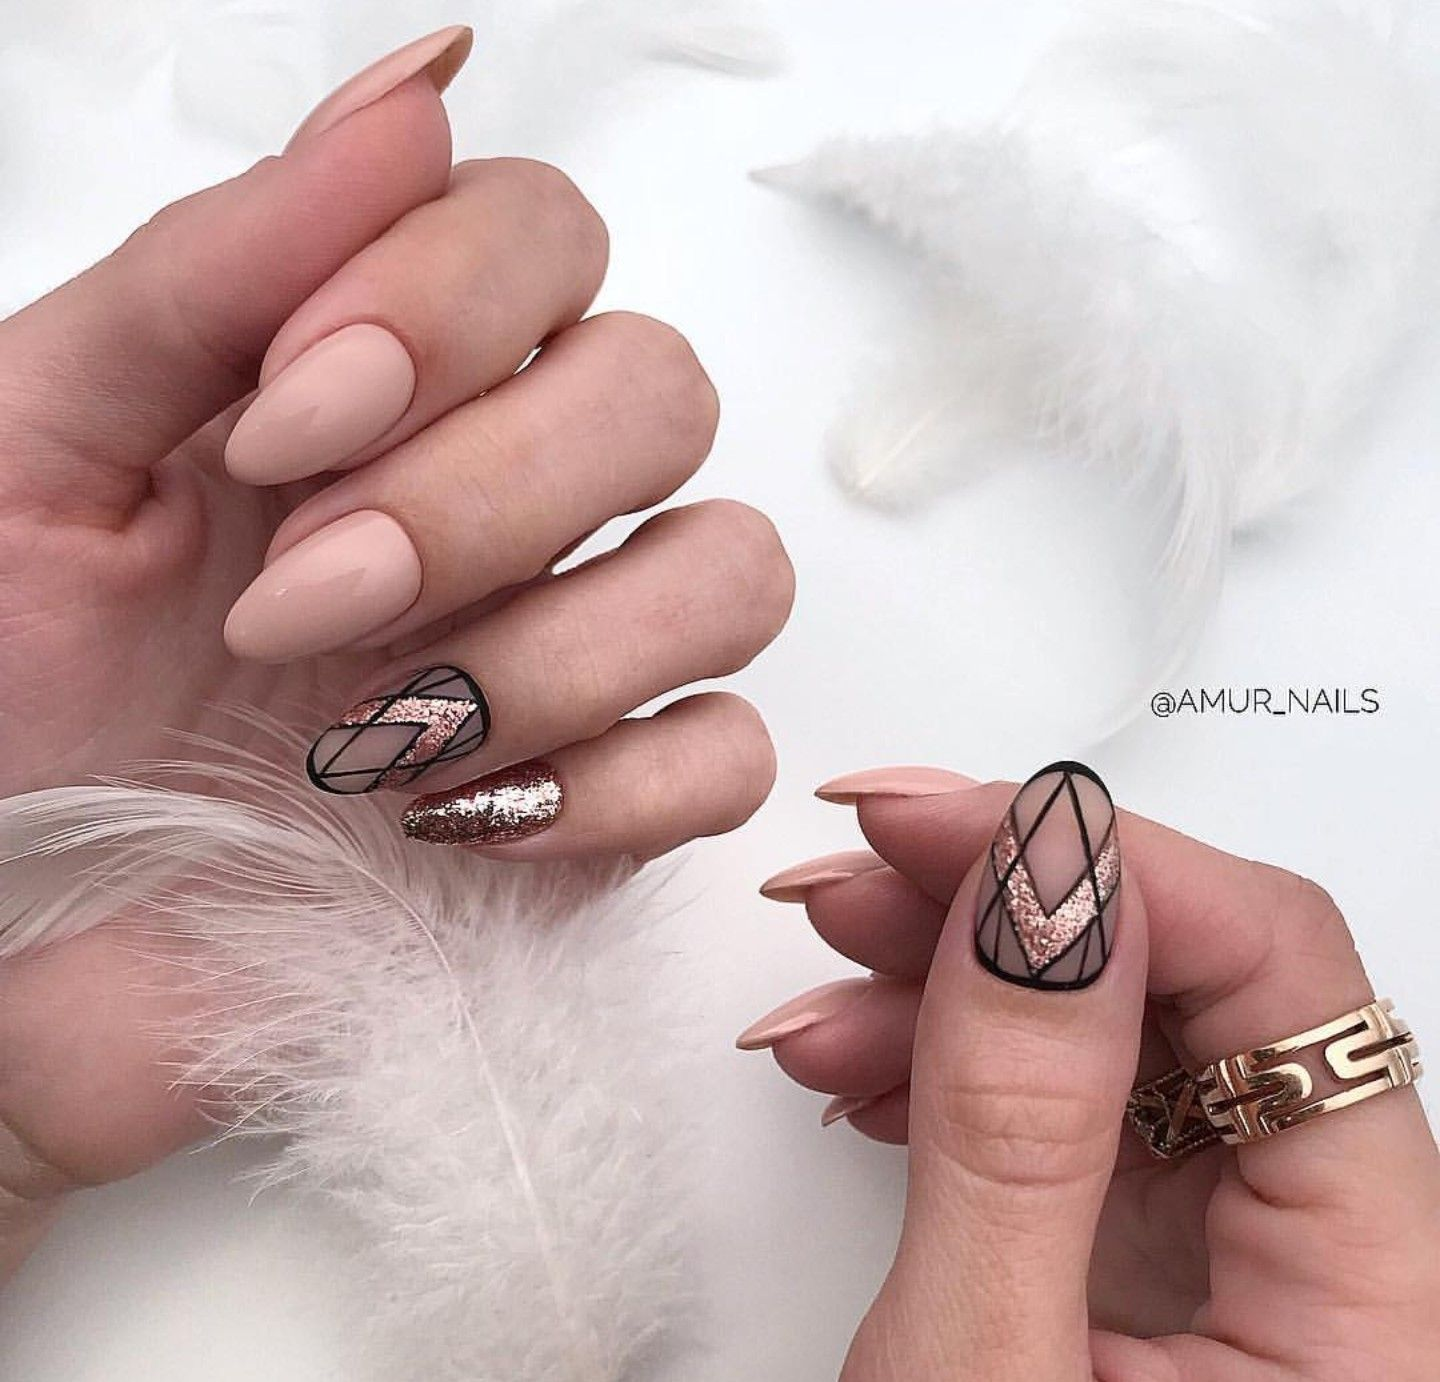 Beige Pink And Matte Negative Space Nails With Black Borders And Rose Gold Accents Re Pinned By B Gold Nail Designs Graduation Nails Rose Gold Nails Design